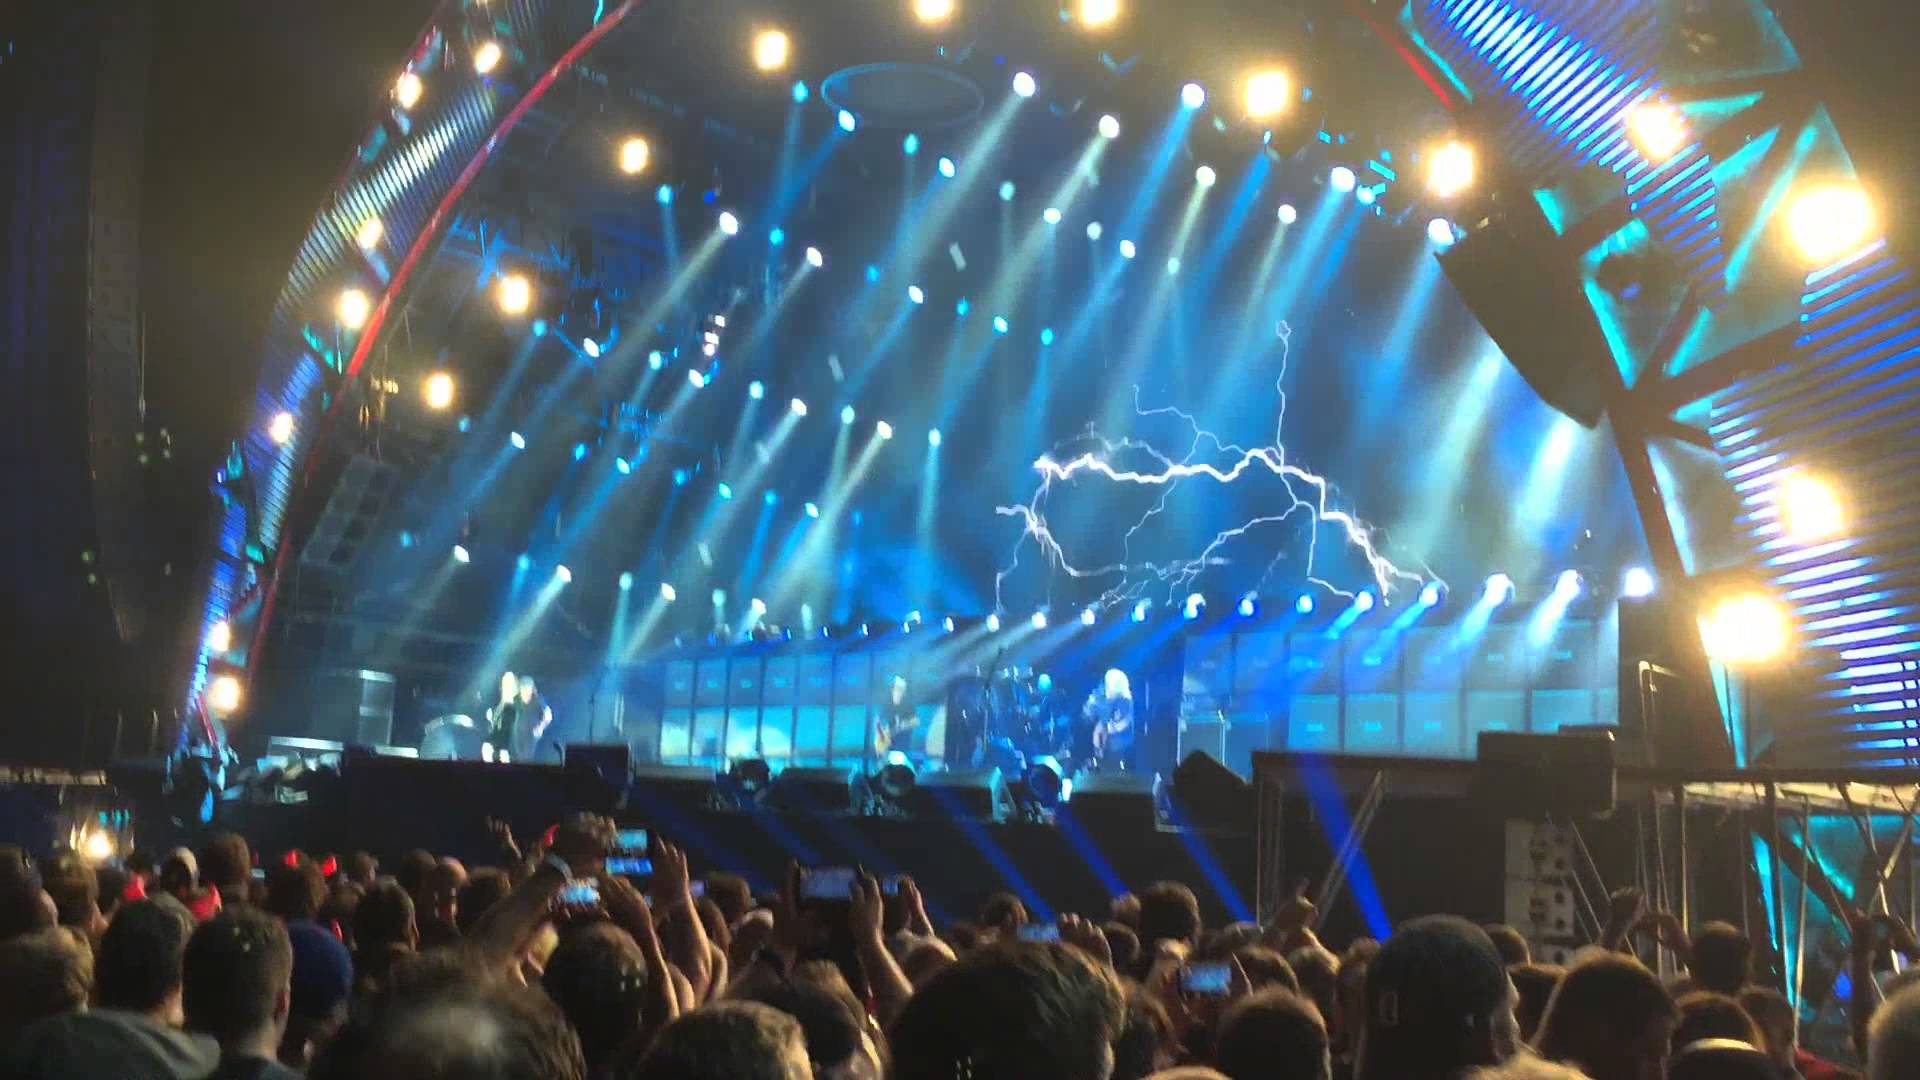 AC/DC schedule, dates, events, and tickets - AXS